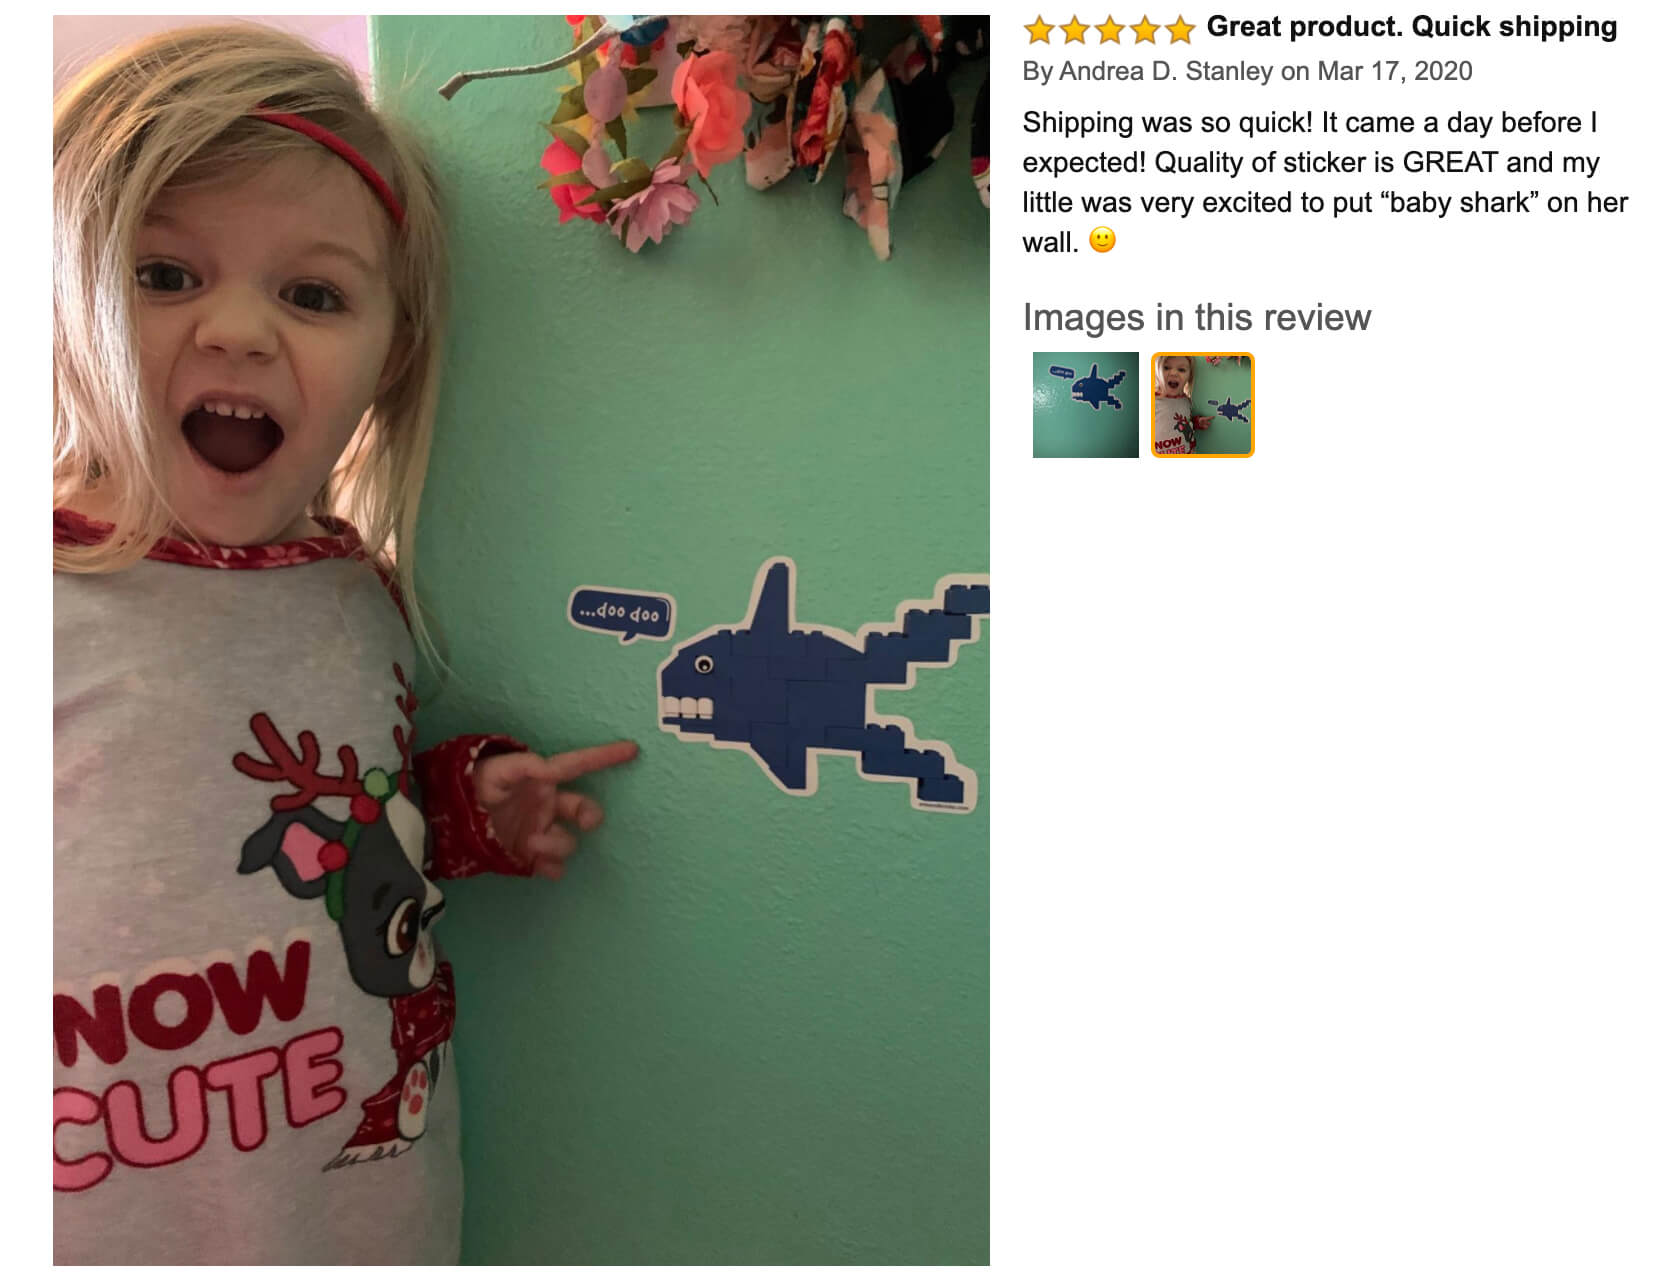 """Arts and Bricks's Brick-Built Shark Wall Sticker review on Amazon: """"Quality of sticker is GREAT and my little was very excited to put """"baby shark"""" on her wall!"""" #legoroom #legodecor #babyshark #legoshark #artsandbricks"""